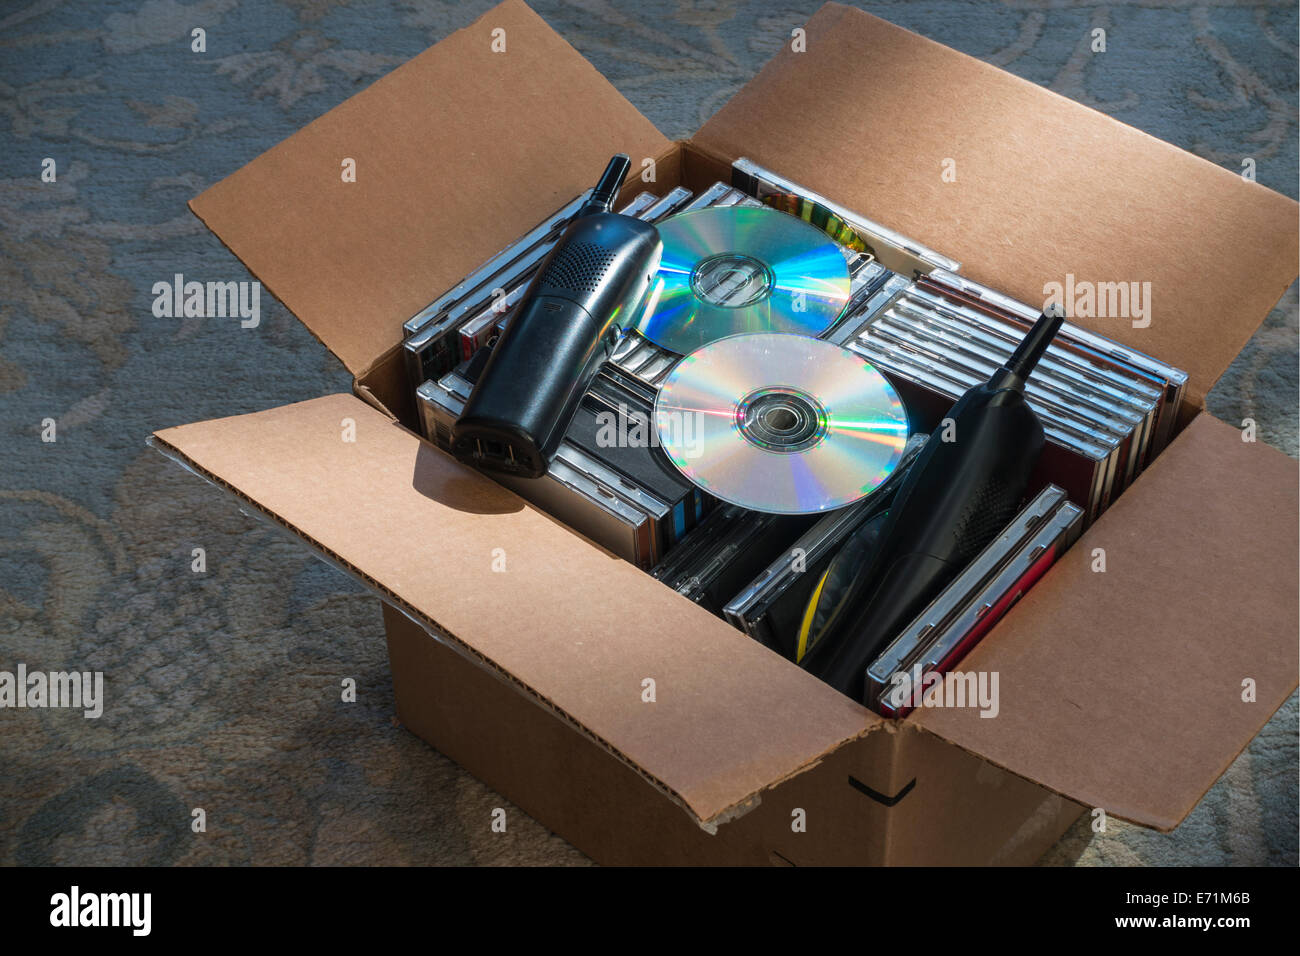 old phones and obsolete CDs in carton - Stock Image